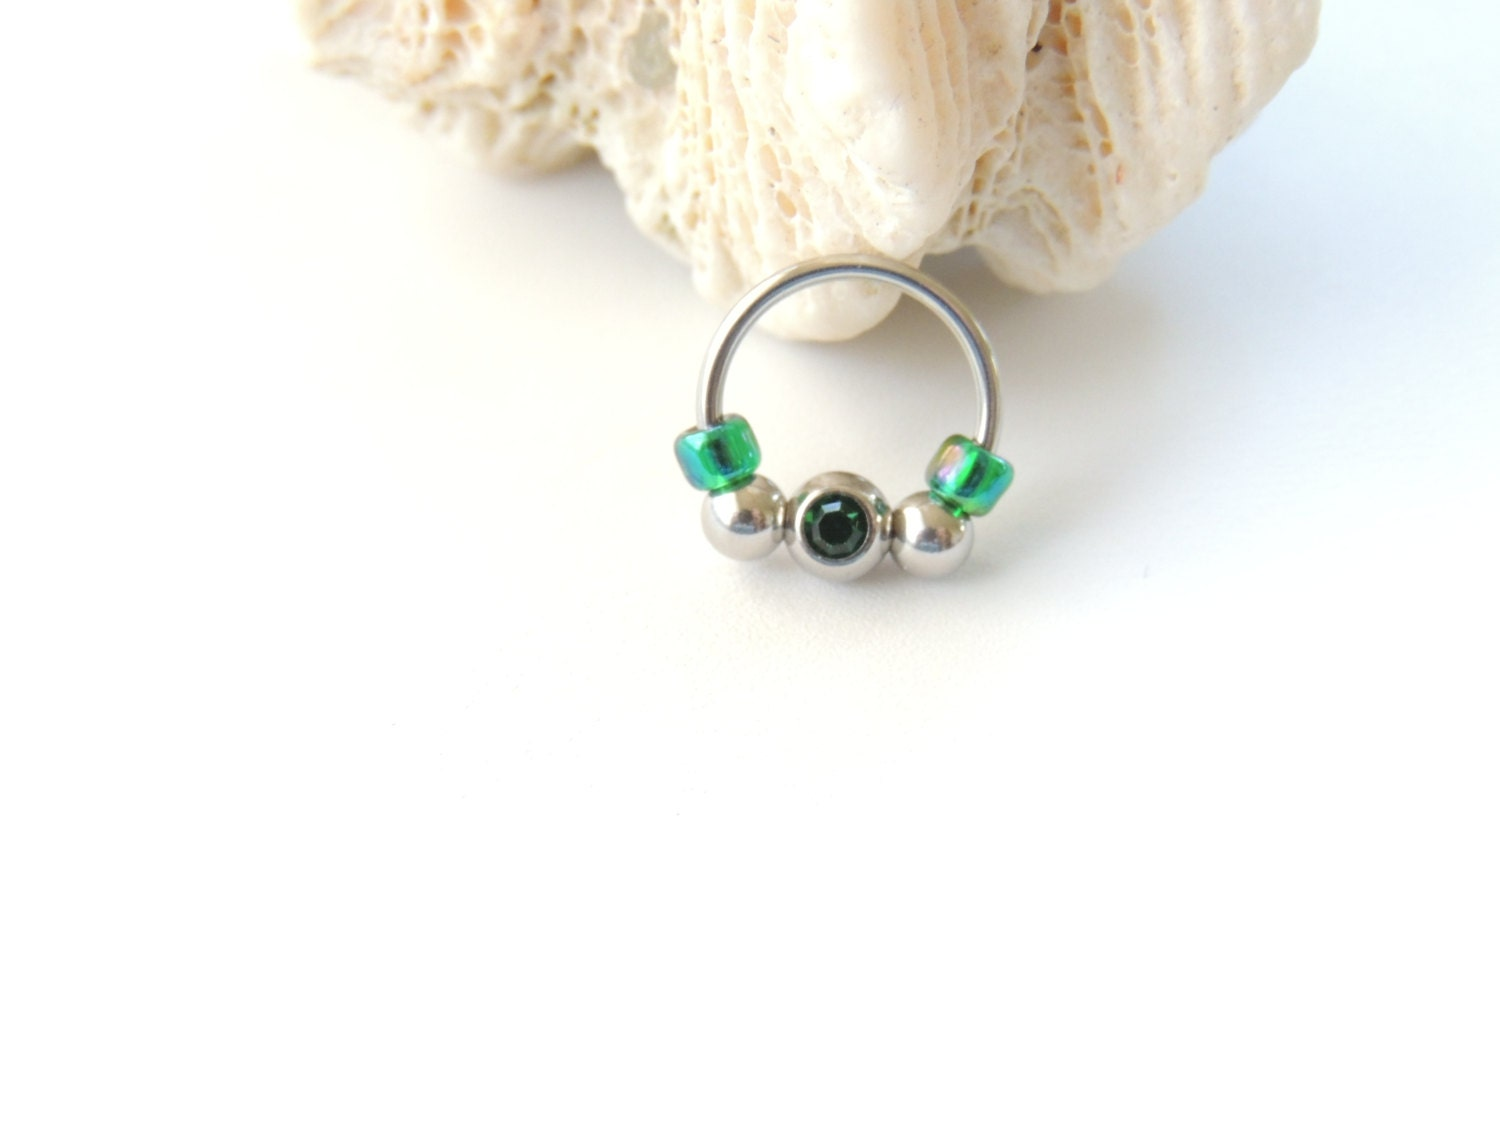 16g captive bead septum nose ring retainer by